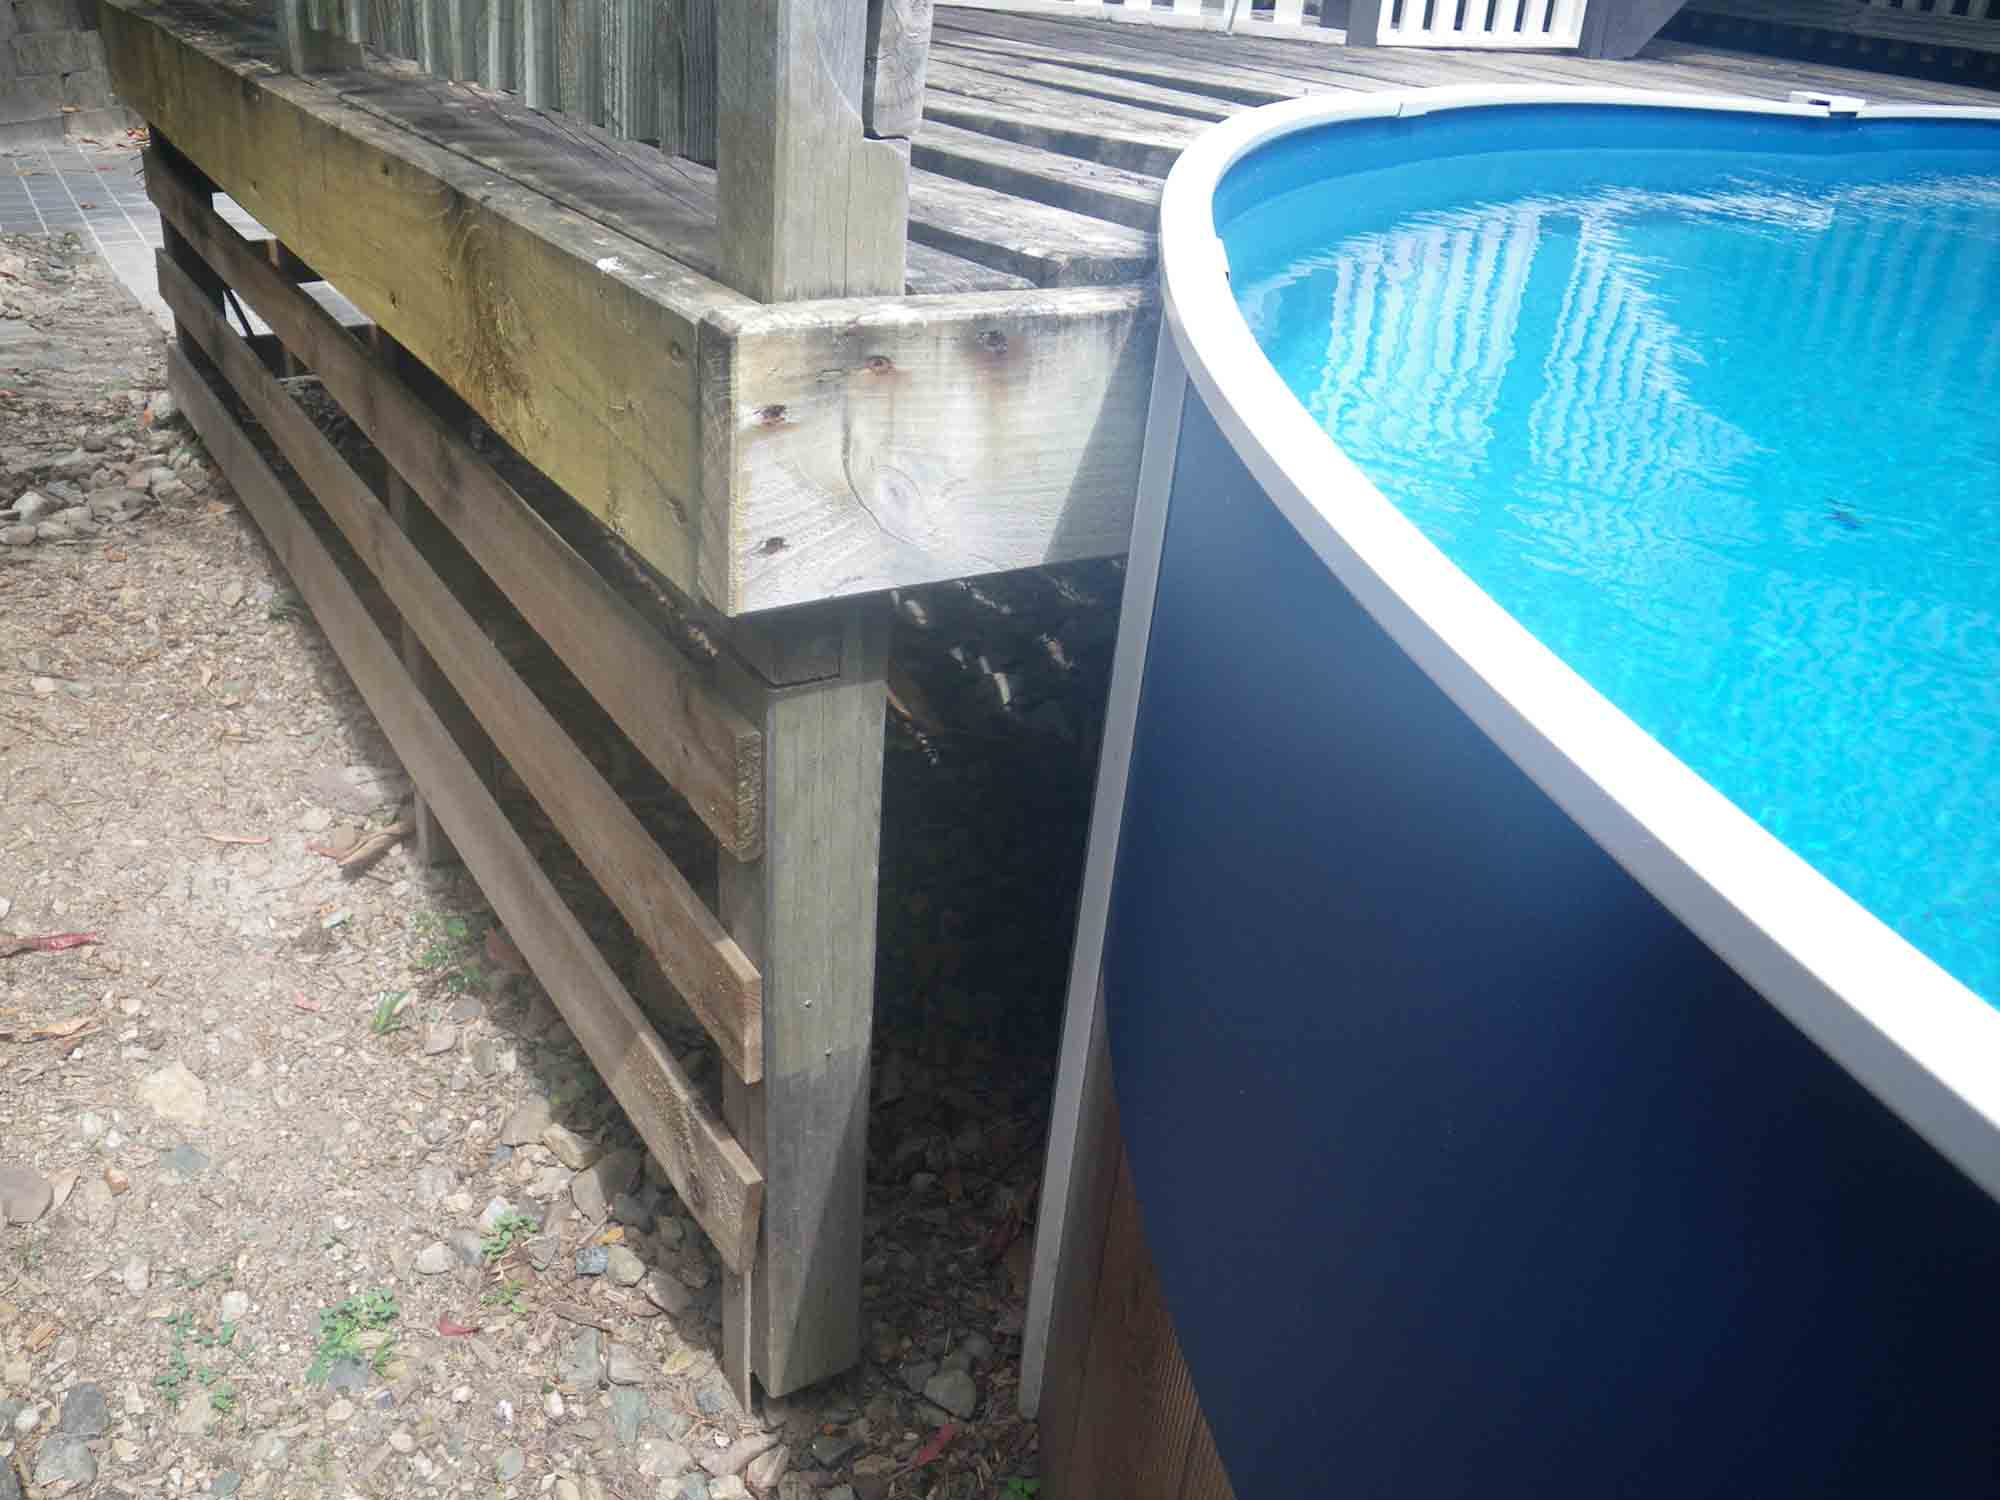 Pool fence safety inspections awebbco for Above ground pool decks brisbane